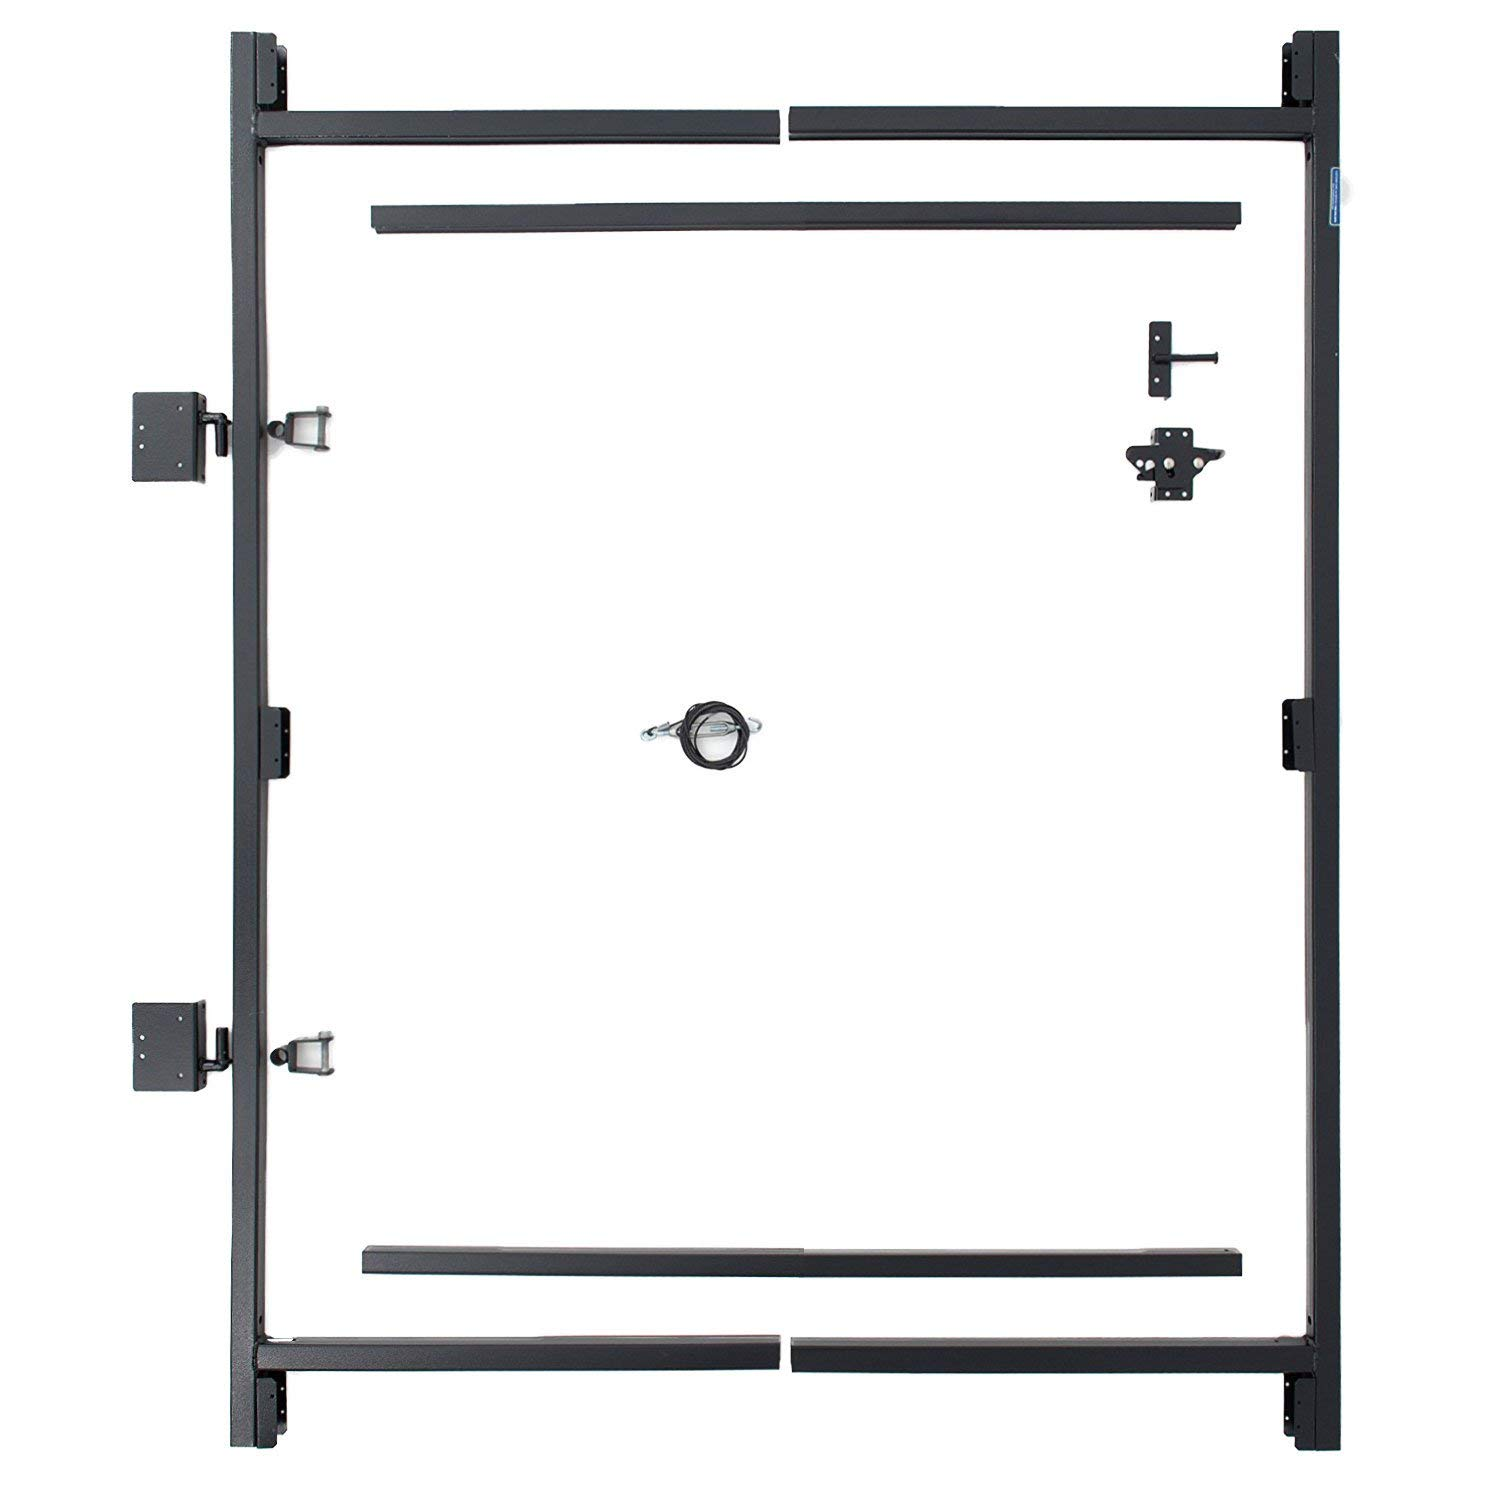 Adjust-A-Gate Steel Frame Gate Building Kit, 36''-60'' Wide Opening Up to 7' High (3 Pack) by Adjust-A-Gate (Image #2)